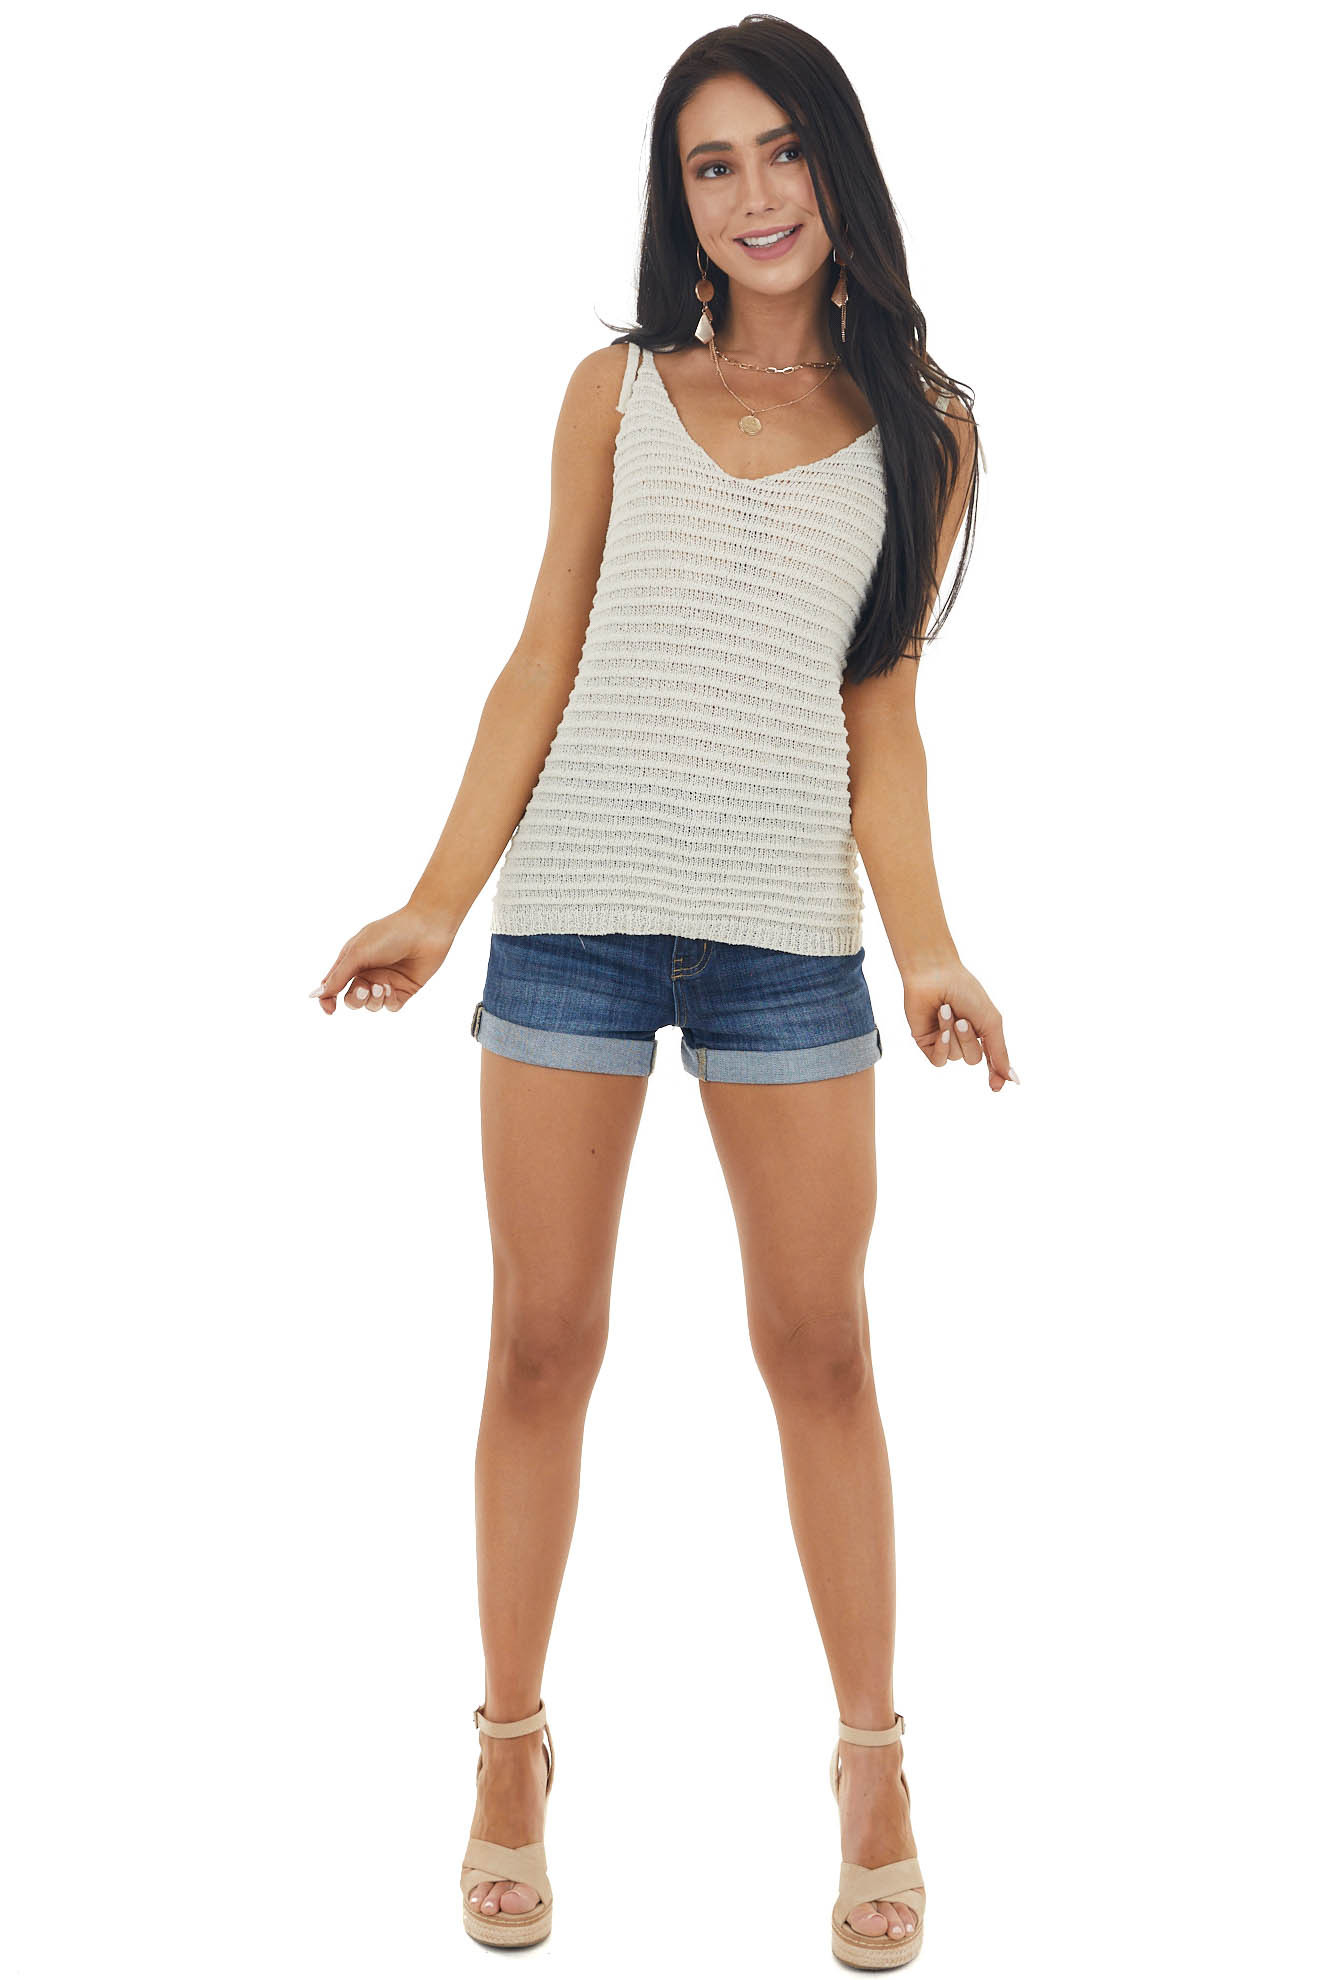 Cream Loose Knit V Neck Tank Top with Tie Closure Straps